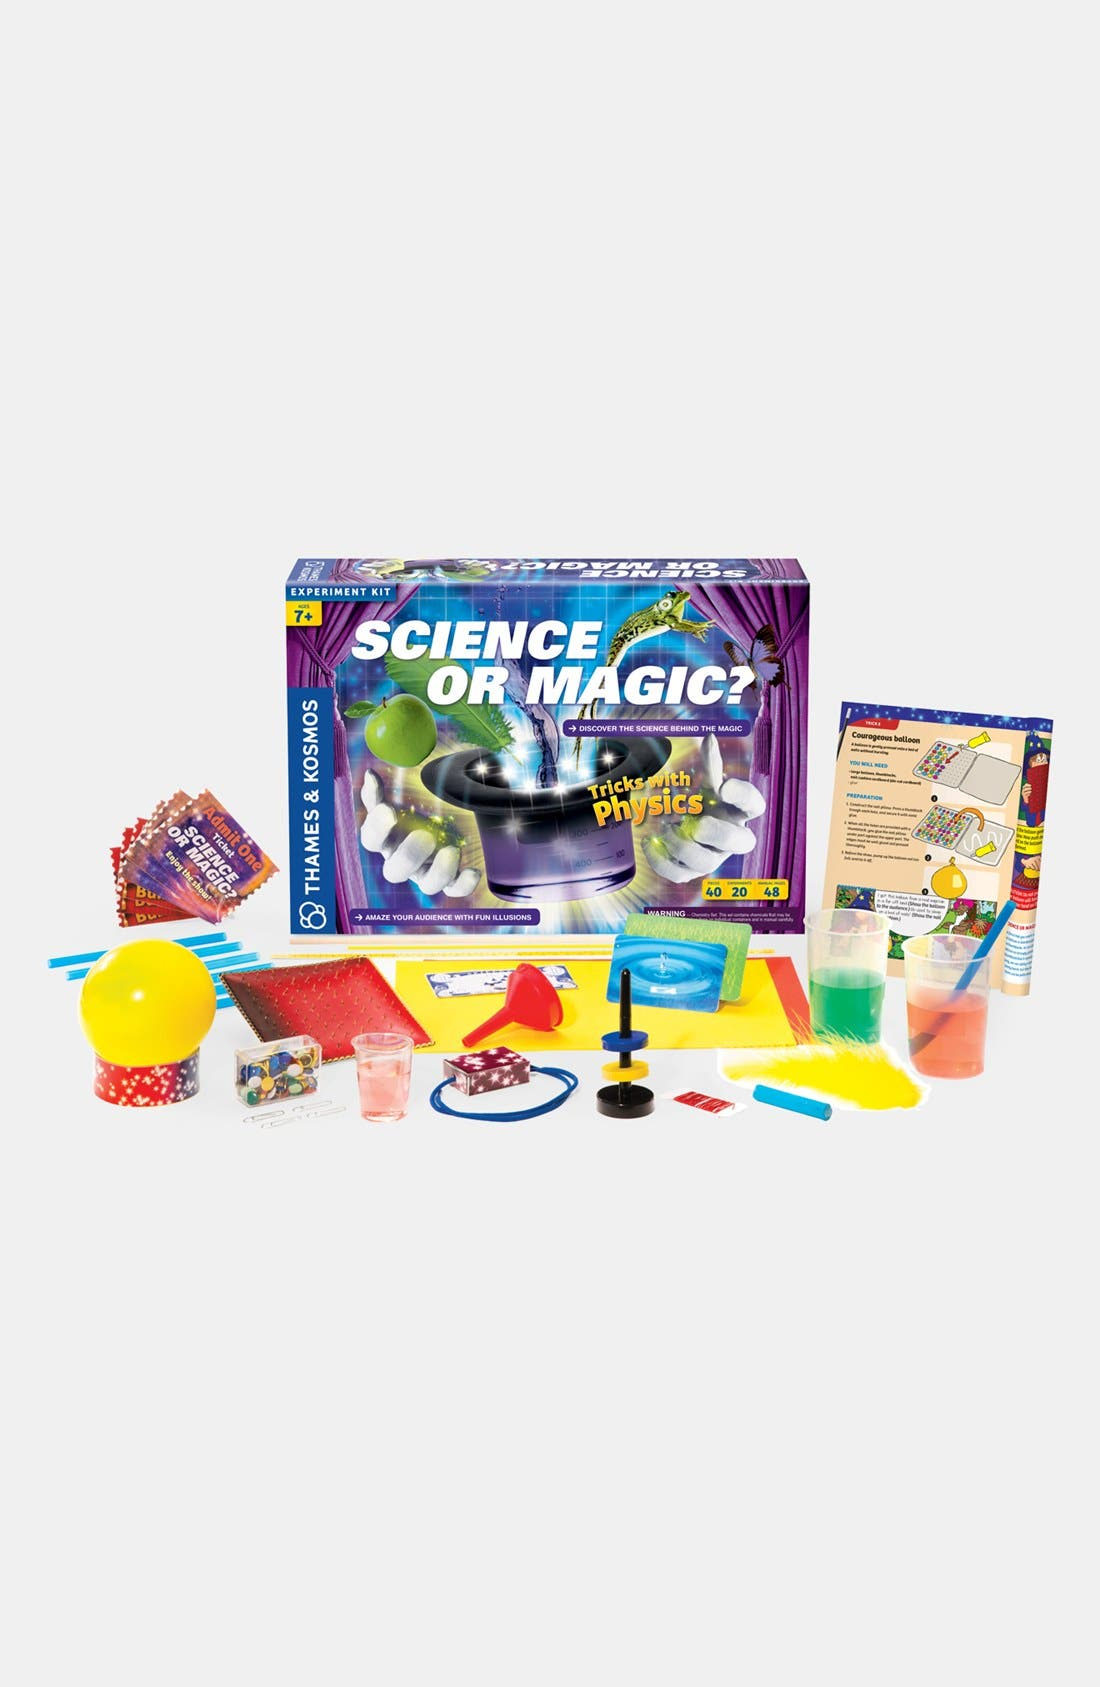 Main Image - Thames & Kosmos 'Science or Magic?' Kit